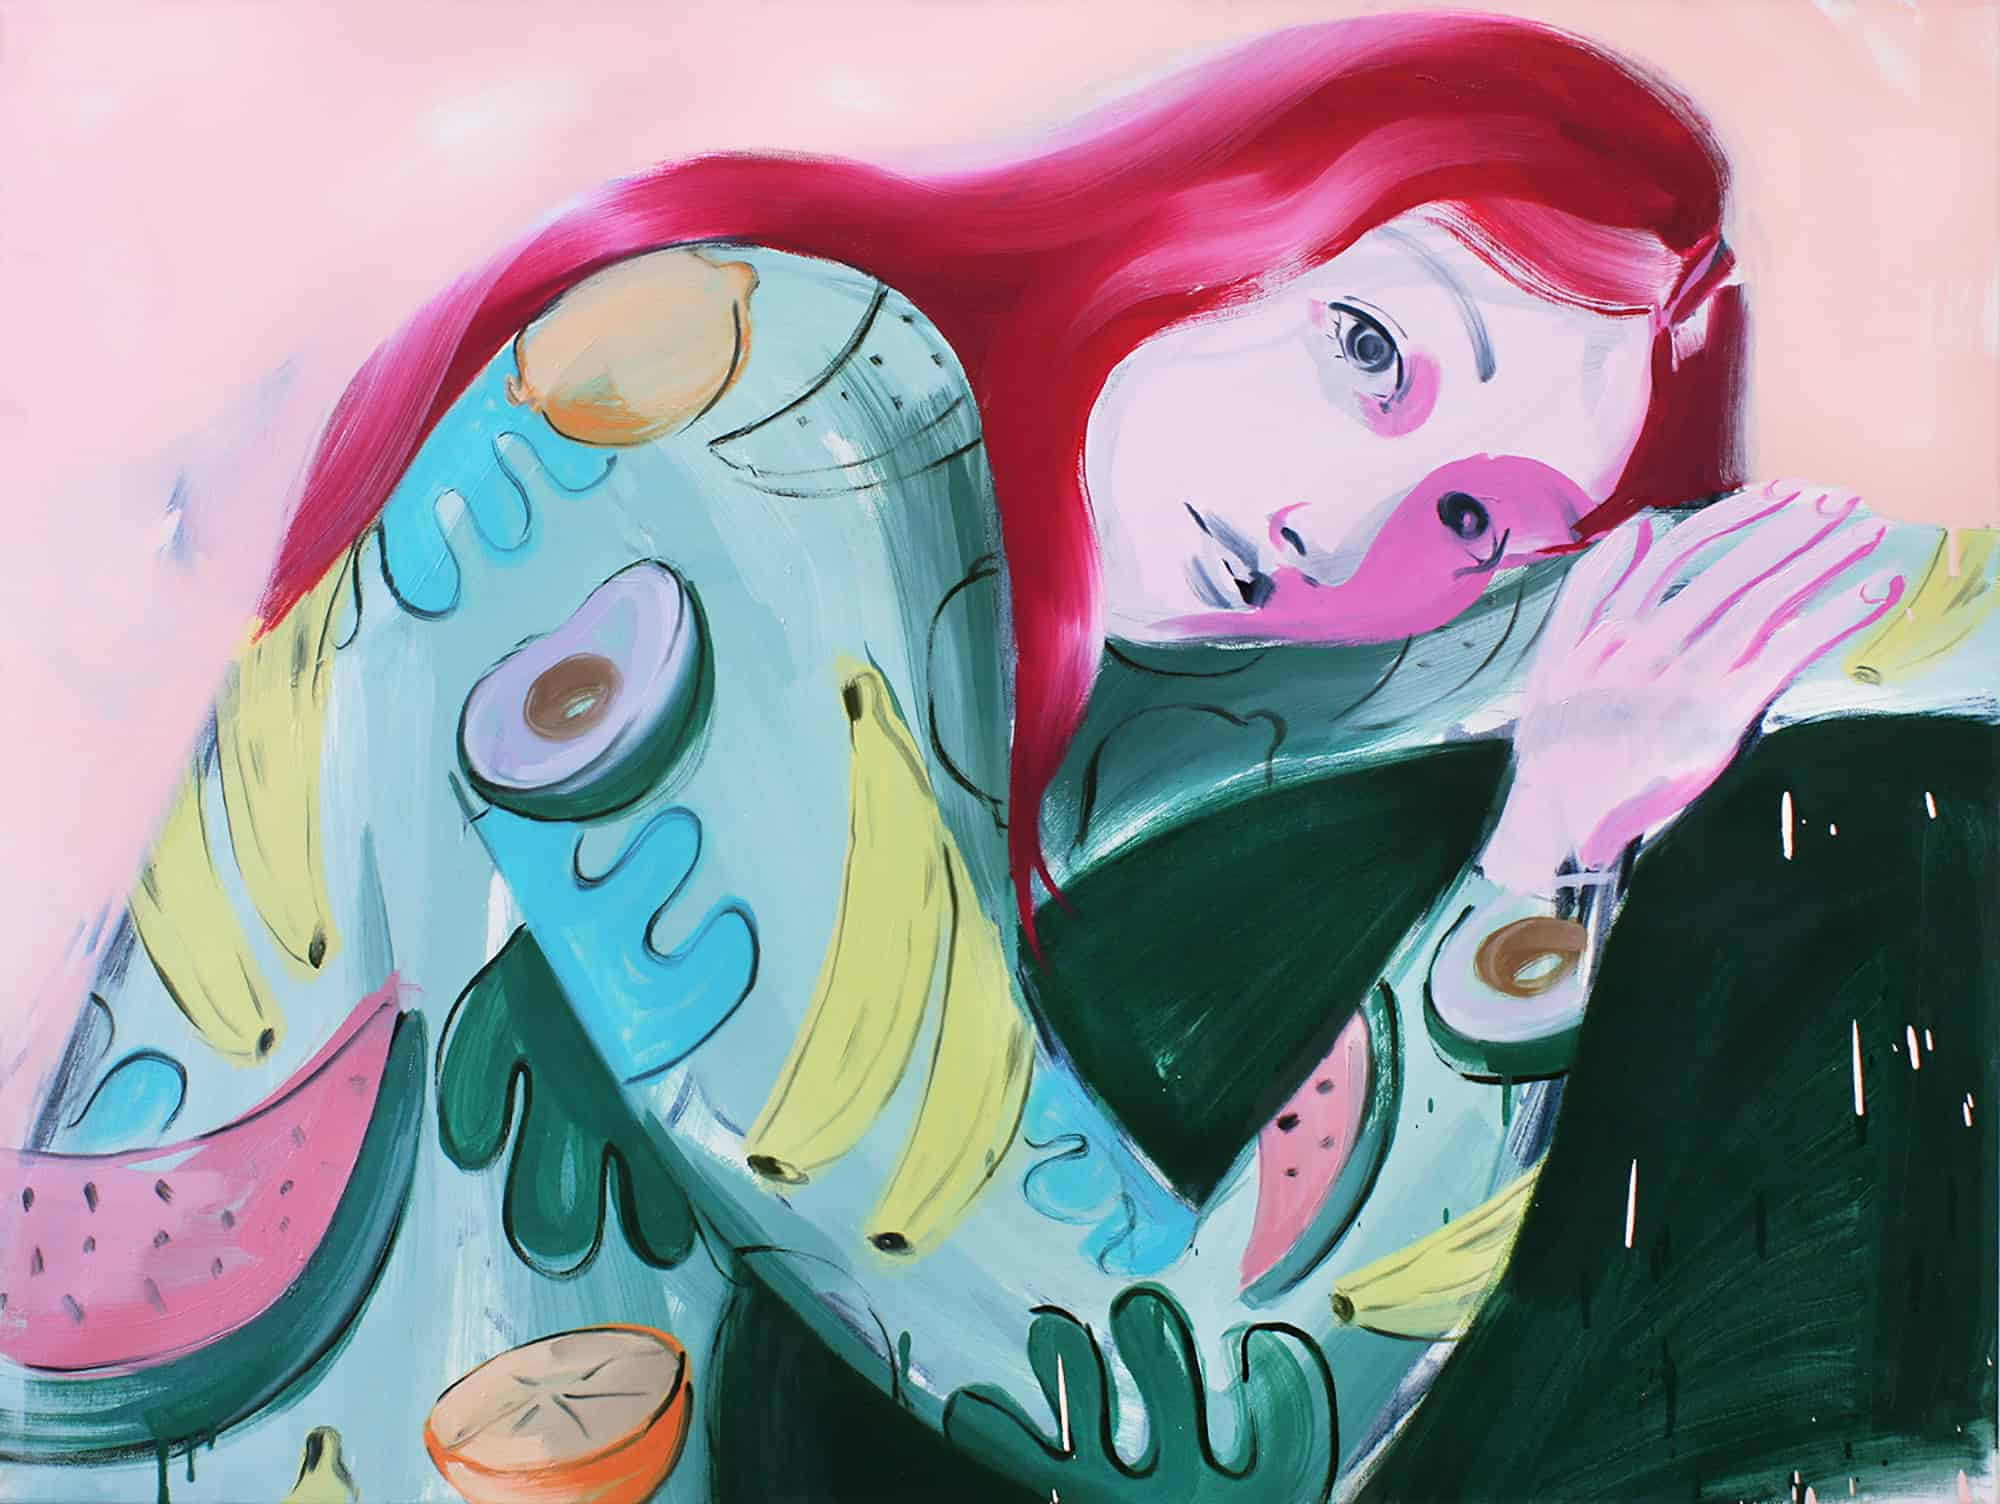 GIRLS GIRLS GIRLS - The Curious Paintings of Sarah Letovsky